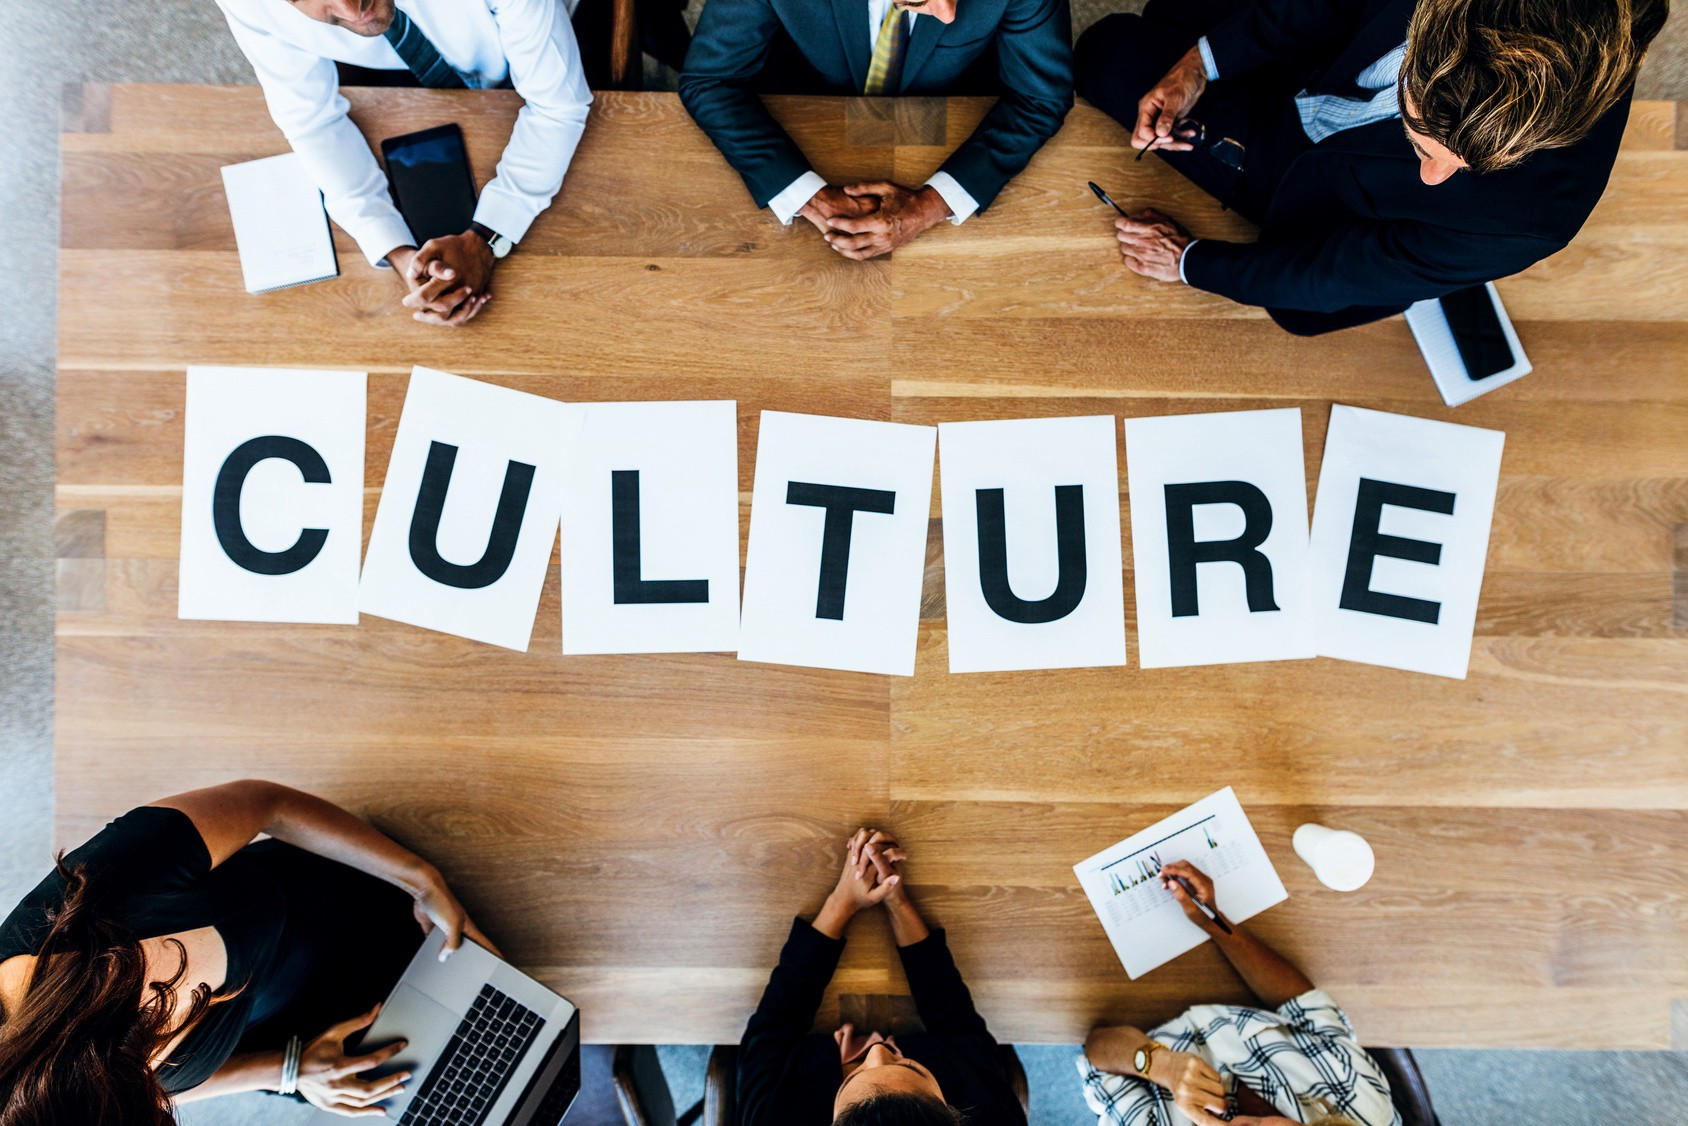 How to avoid the cultural misunderstandings that can impact your